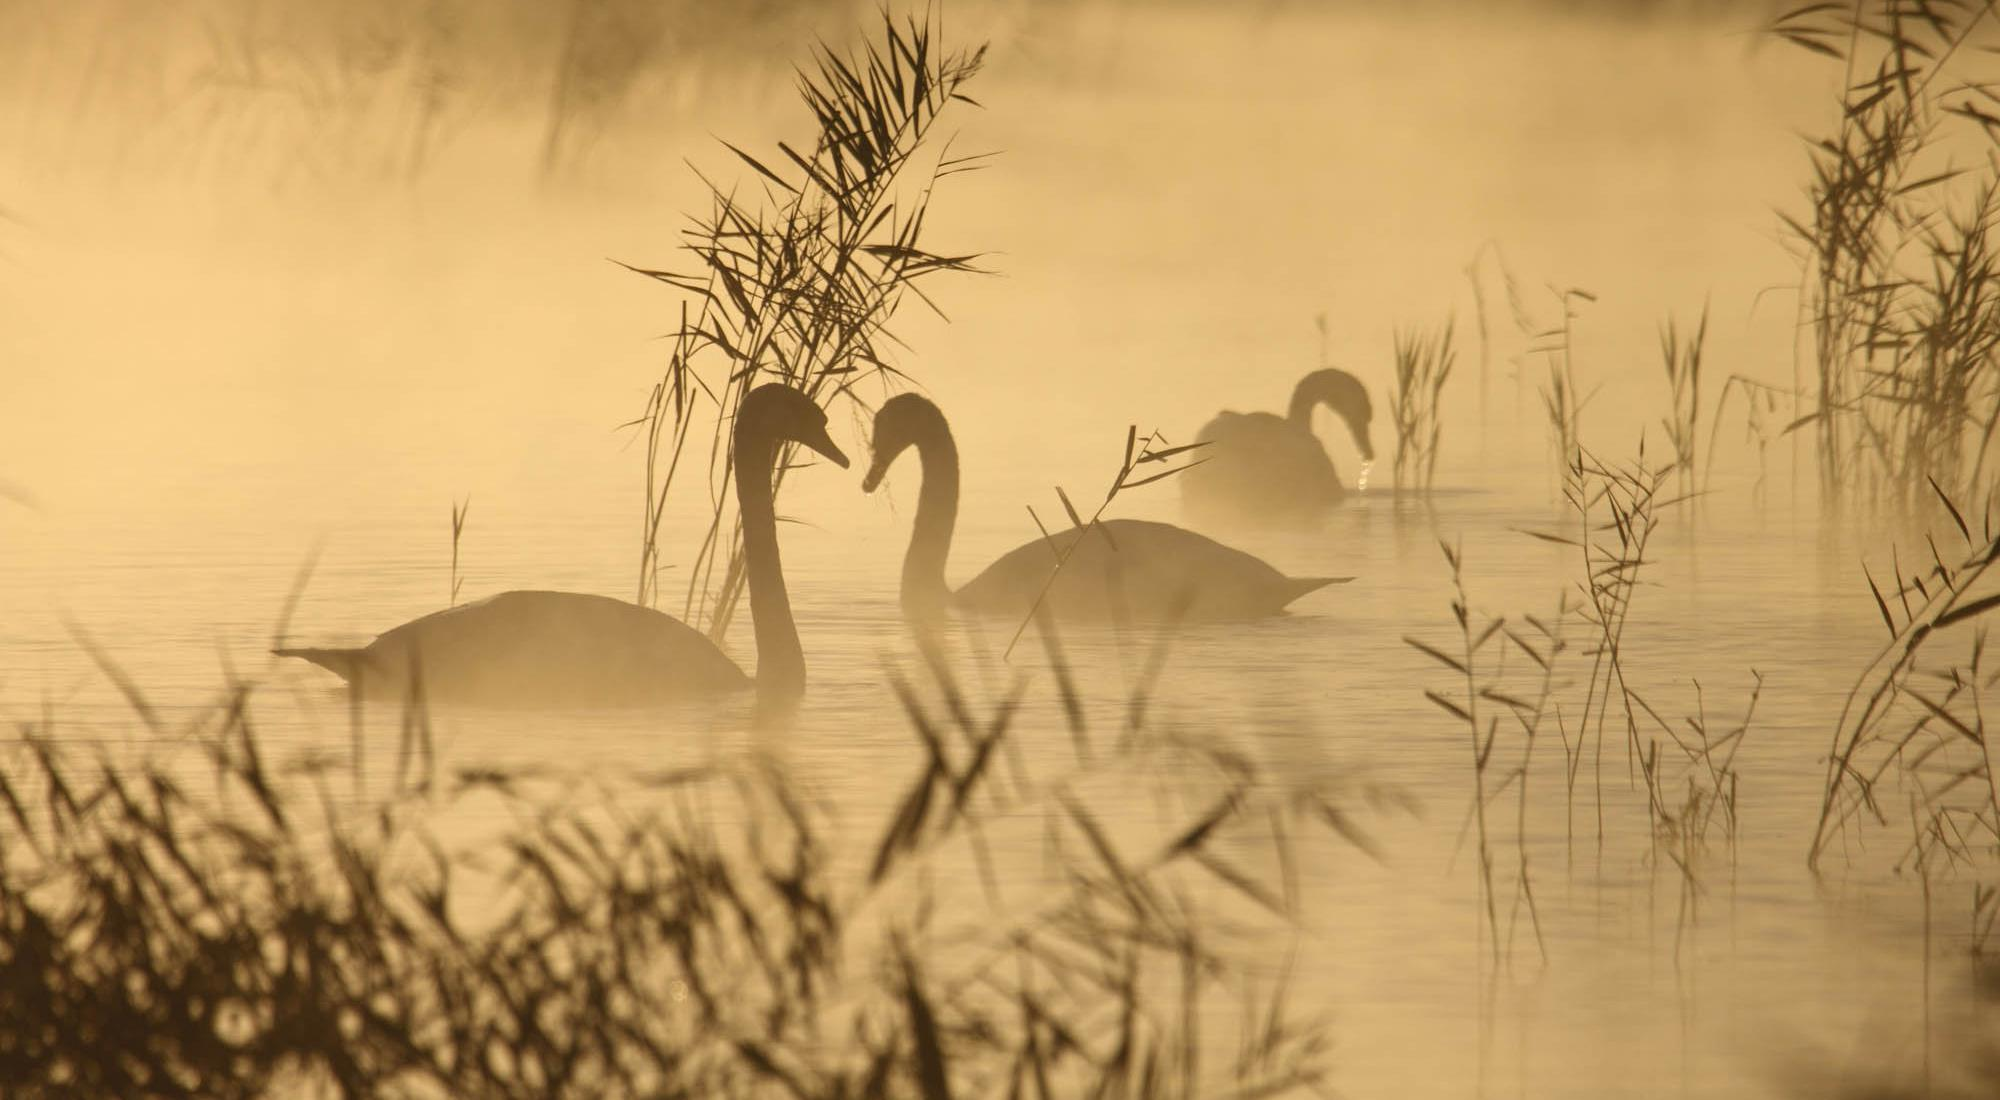 Swans on a foggy lake.